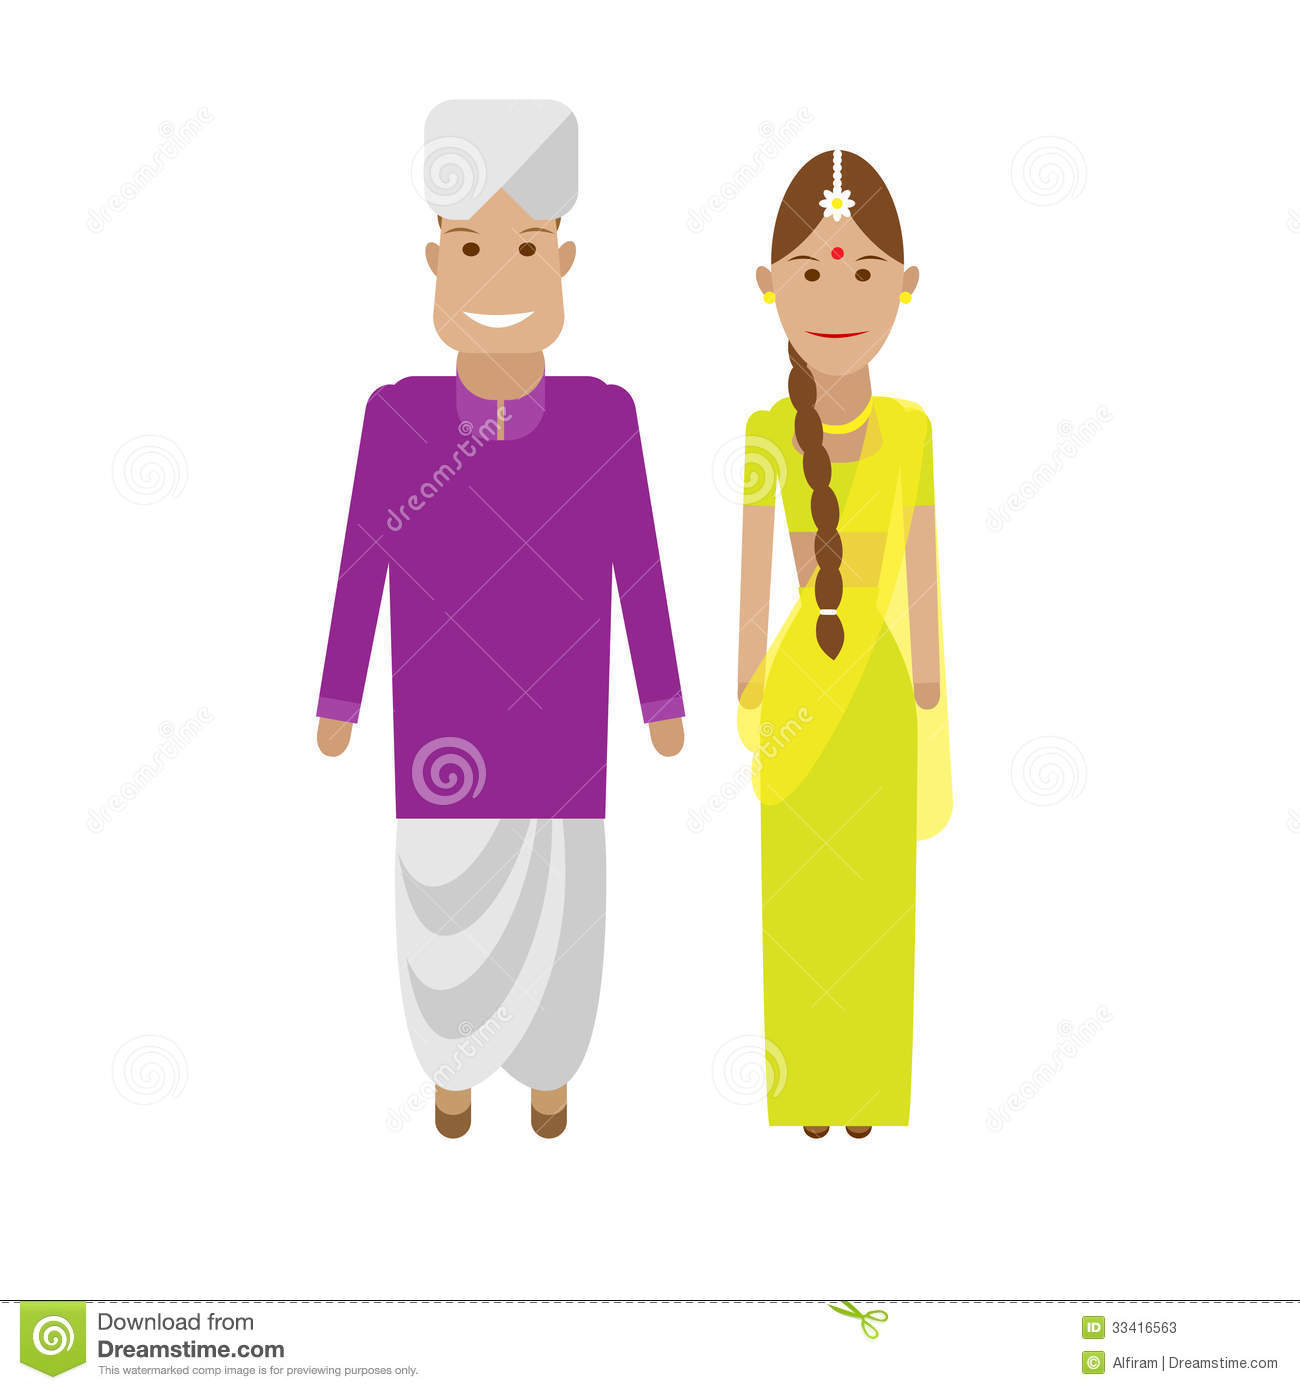 Indian traditional dress clipart clip art royalty free library Indian traditional dress clipart - ClipartFest clip art royalty free library